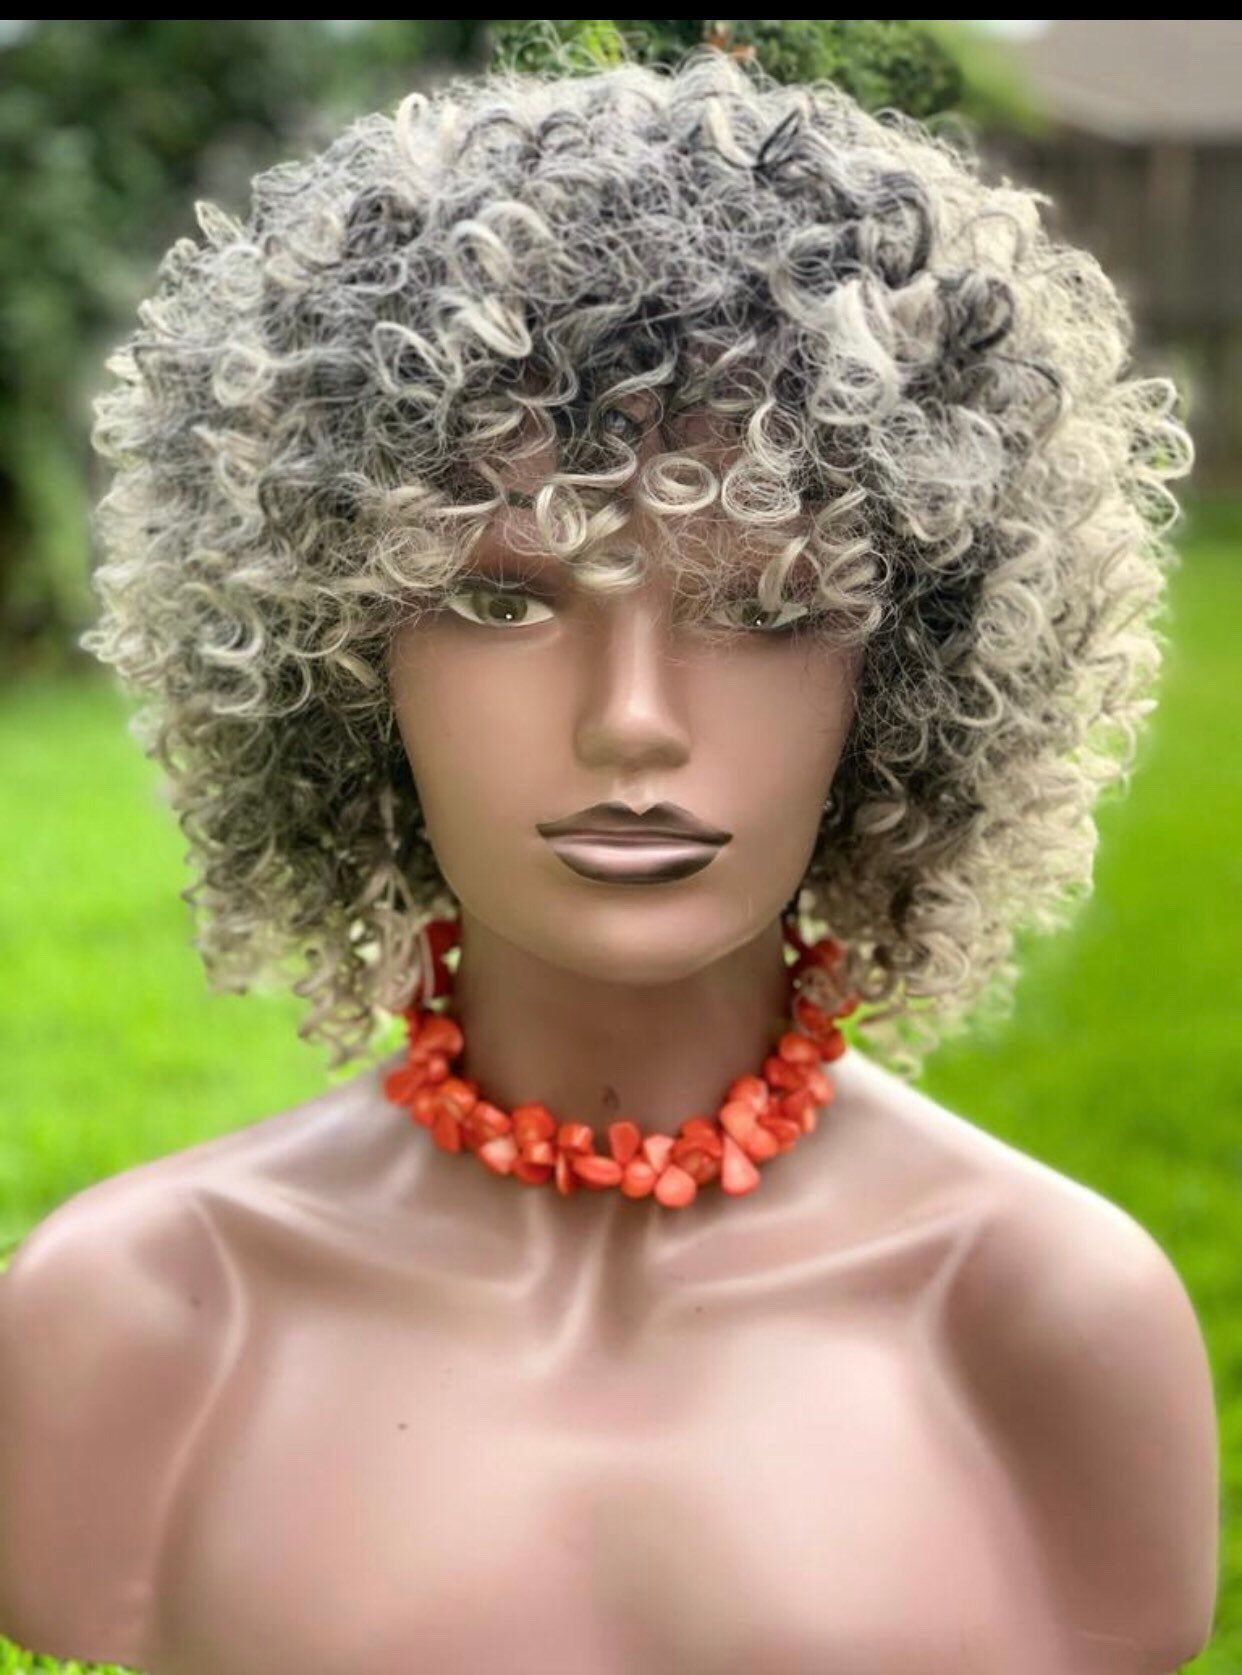 2021 New Lace Front Wigs White Woman Wearing Lace Front Wigs Snow White Cosplay Wig American Caucasian Human Hair Wigs